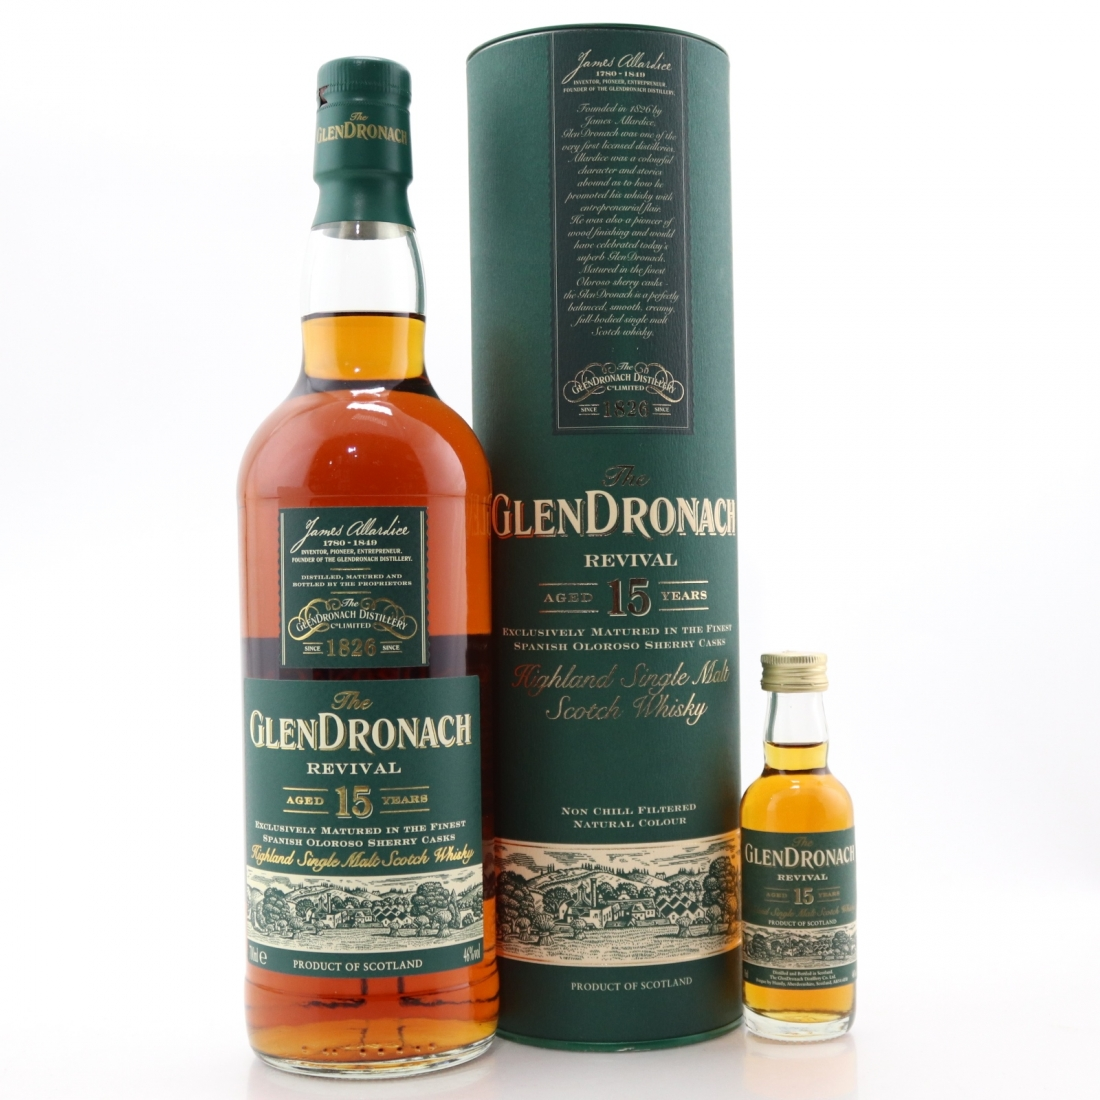 Glendronach 15 Year Old Revival with Miniature 5cl / Pre-2015